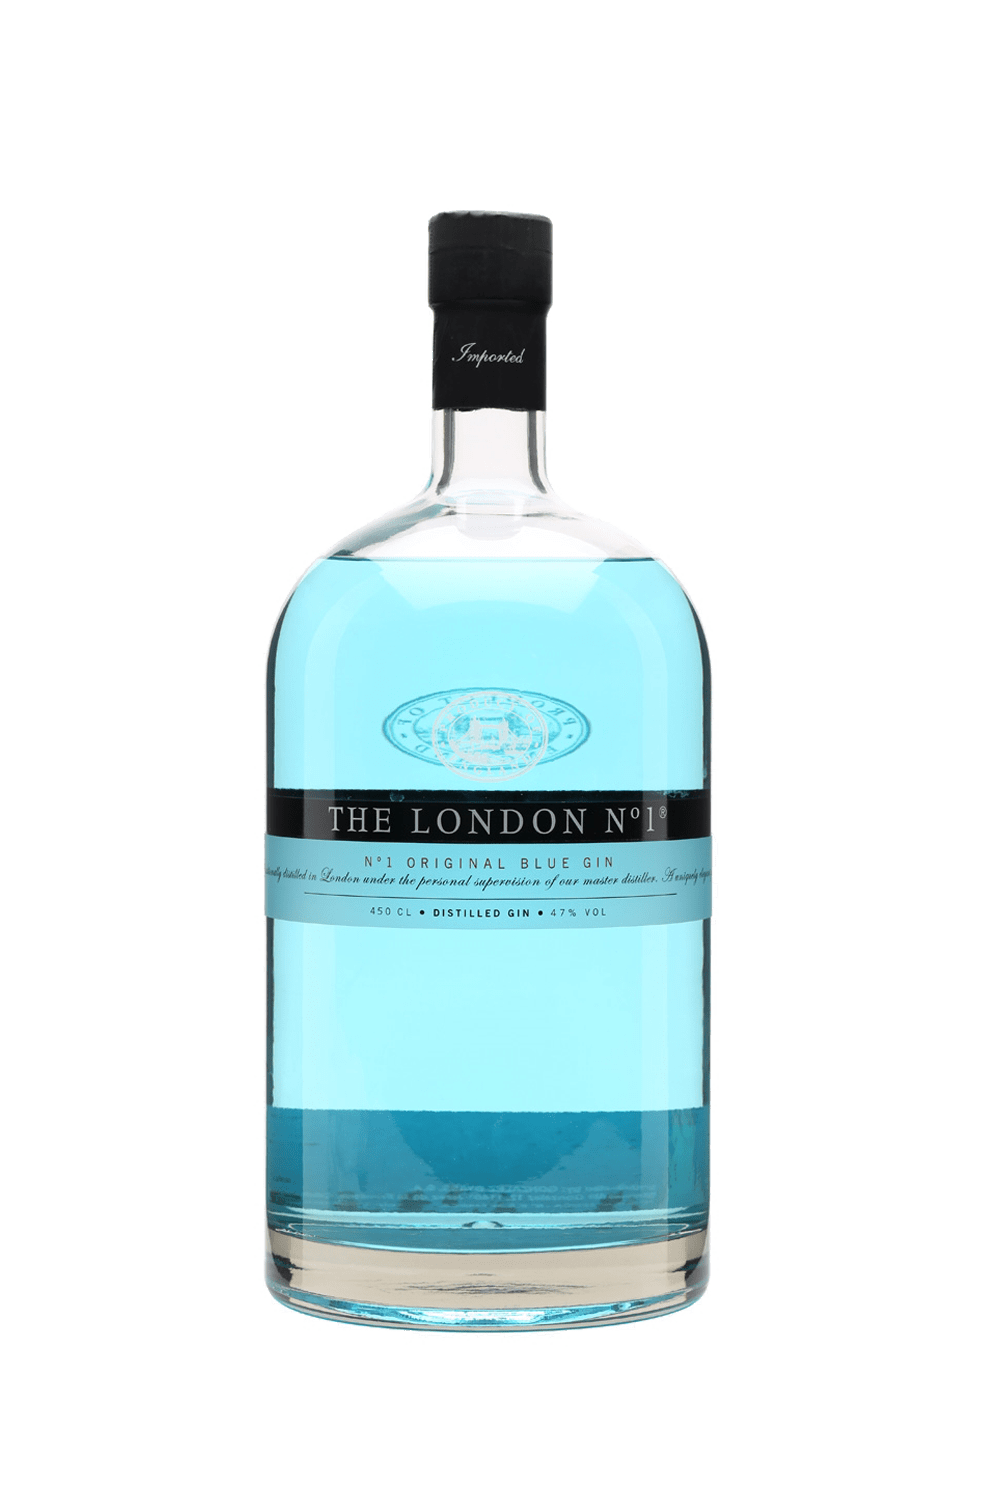 London Number 1 Gin